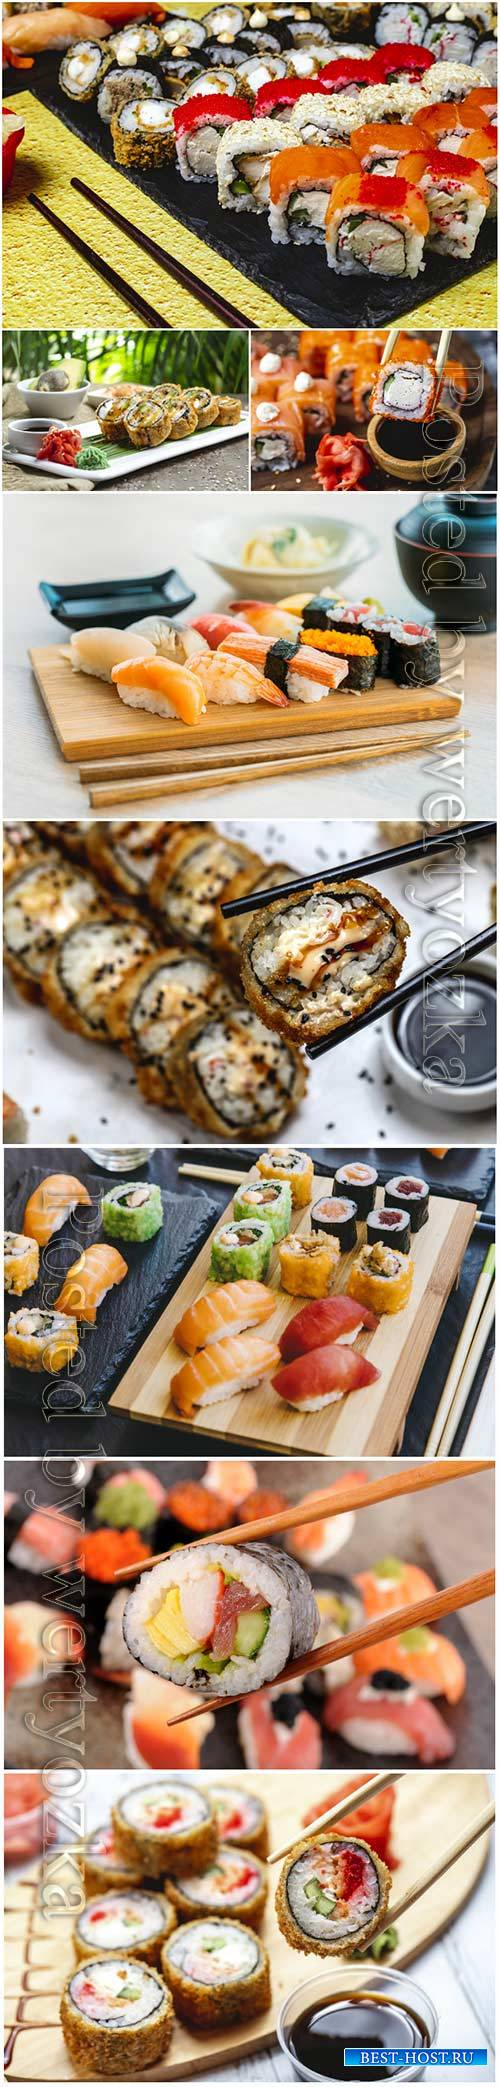 Sushi roll sets with wasabi sauce